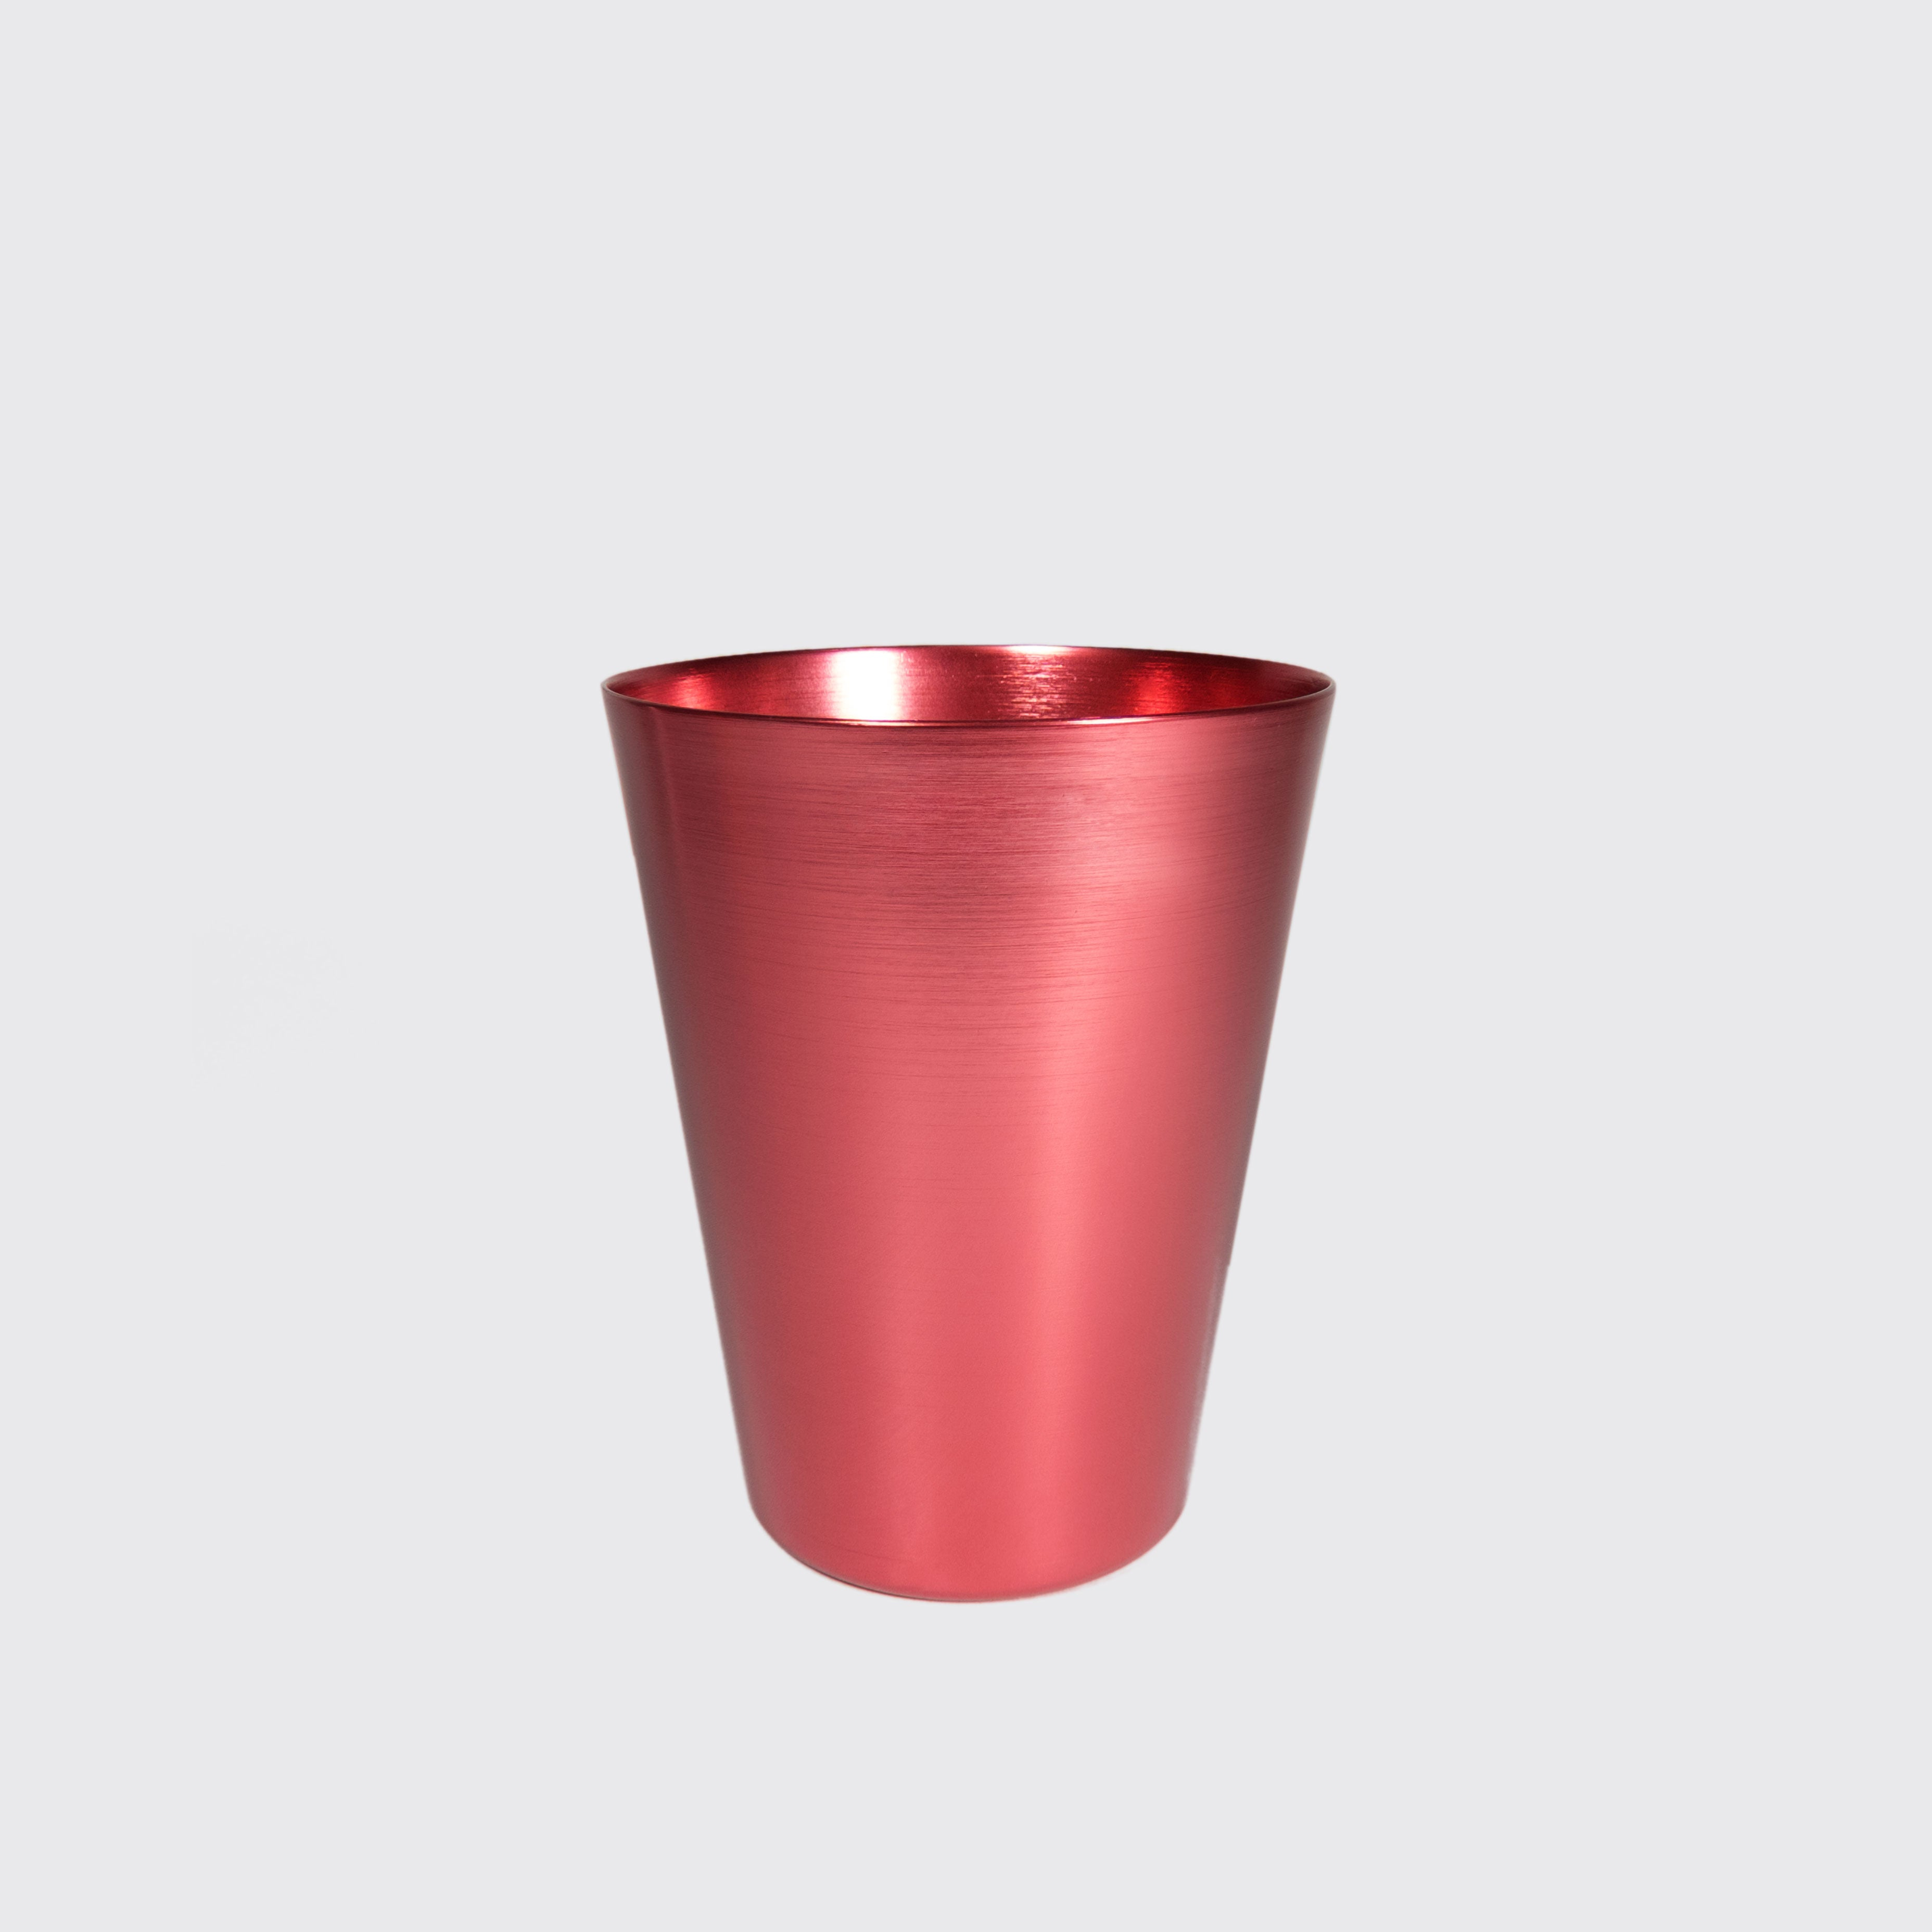 100% Re-cycled Anodized Aluminum Tumbler - Watermelon